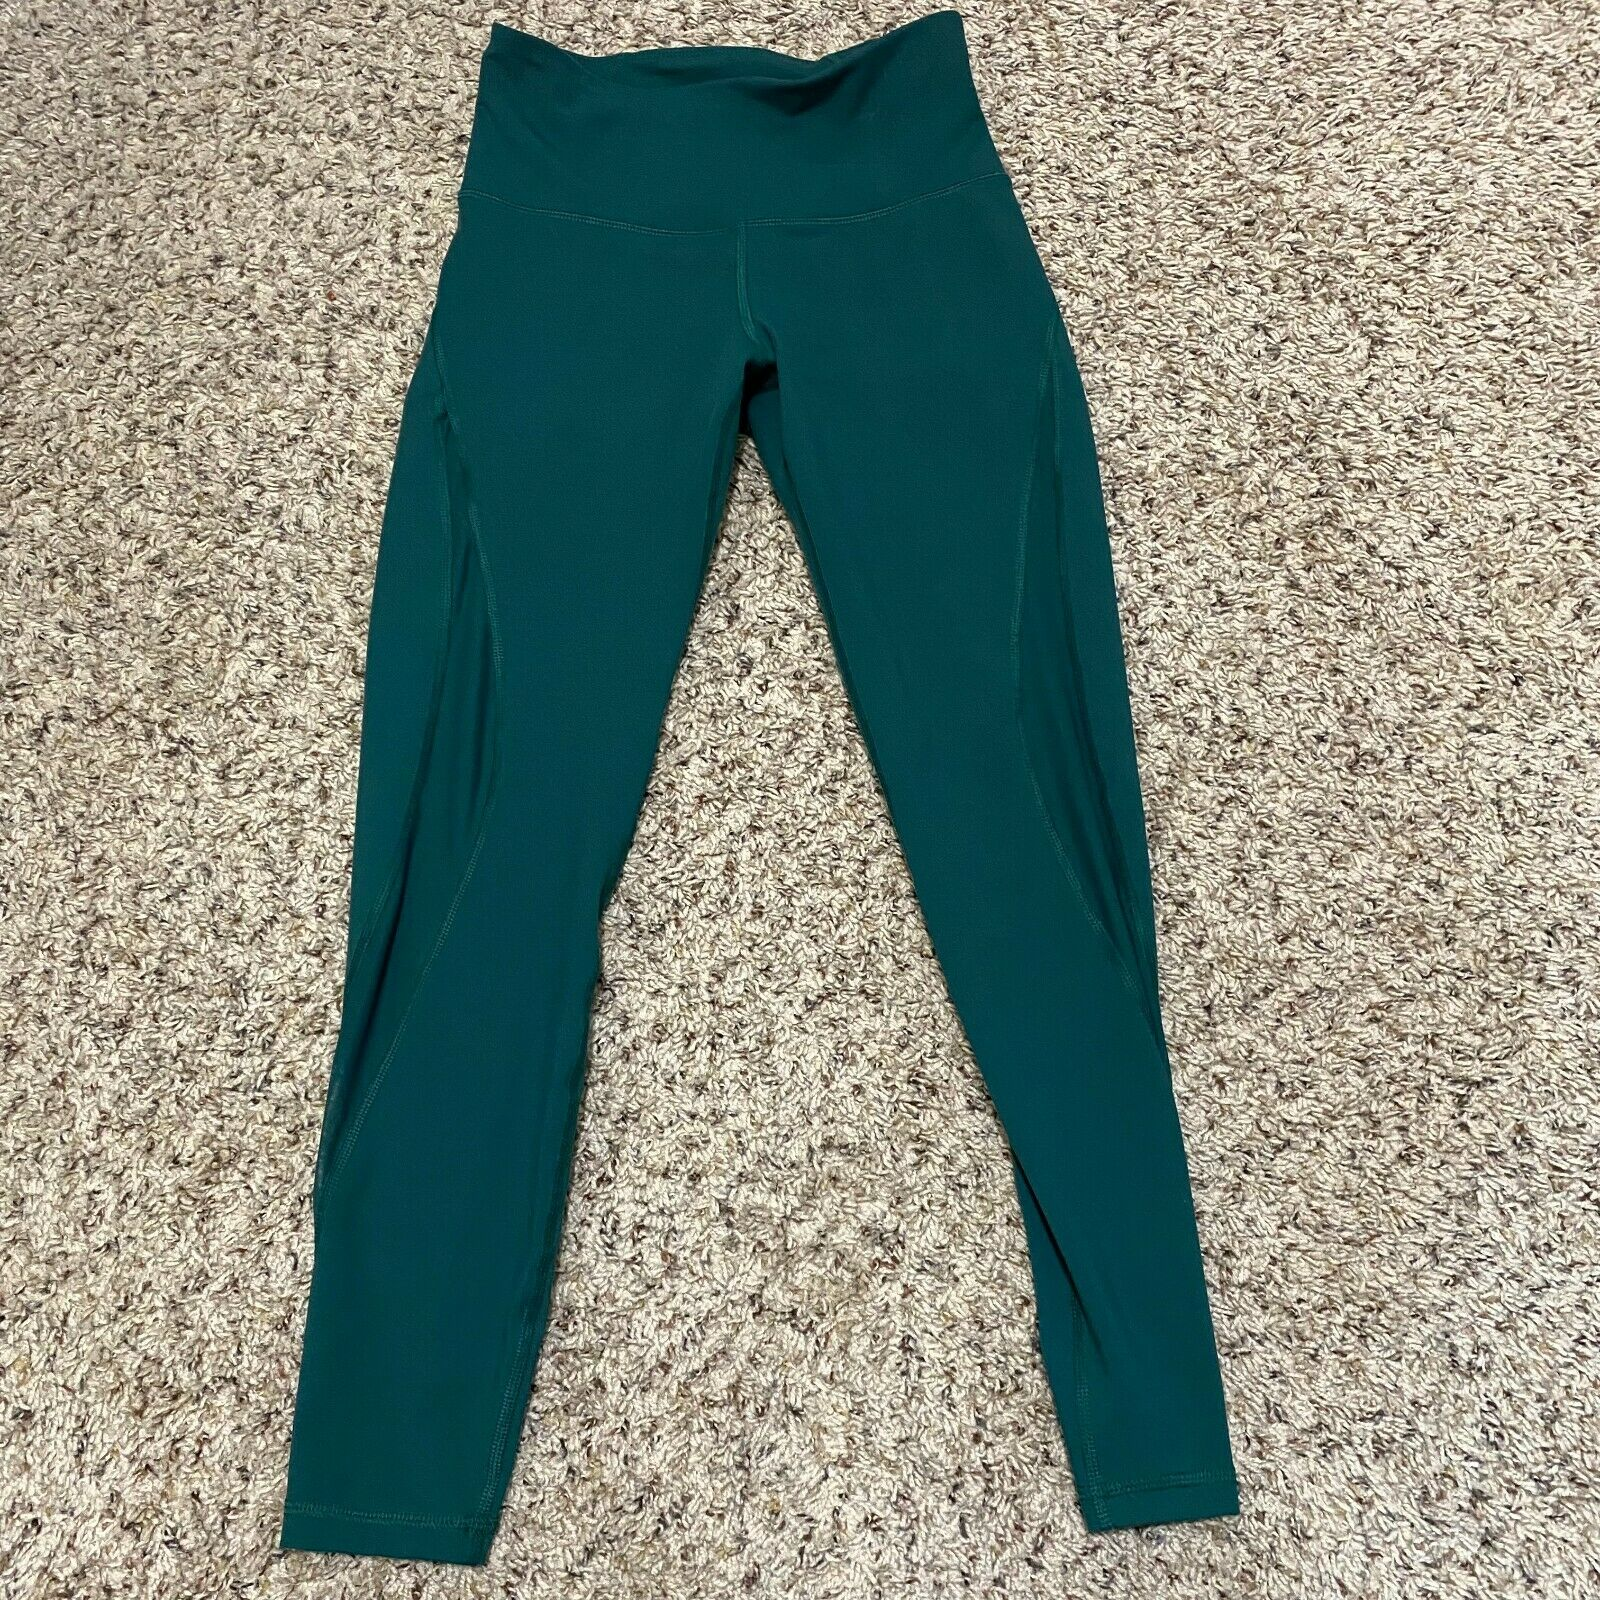 Old Navy Active Go Dry Womens Green High Waisted Yoga Leggings Size Small